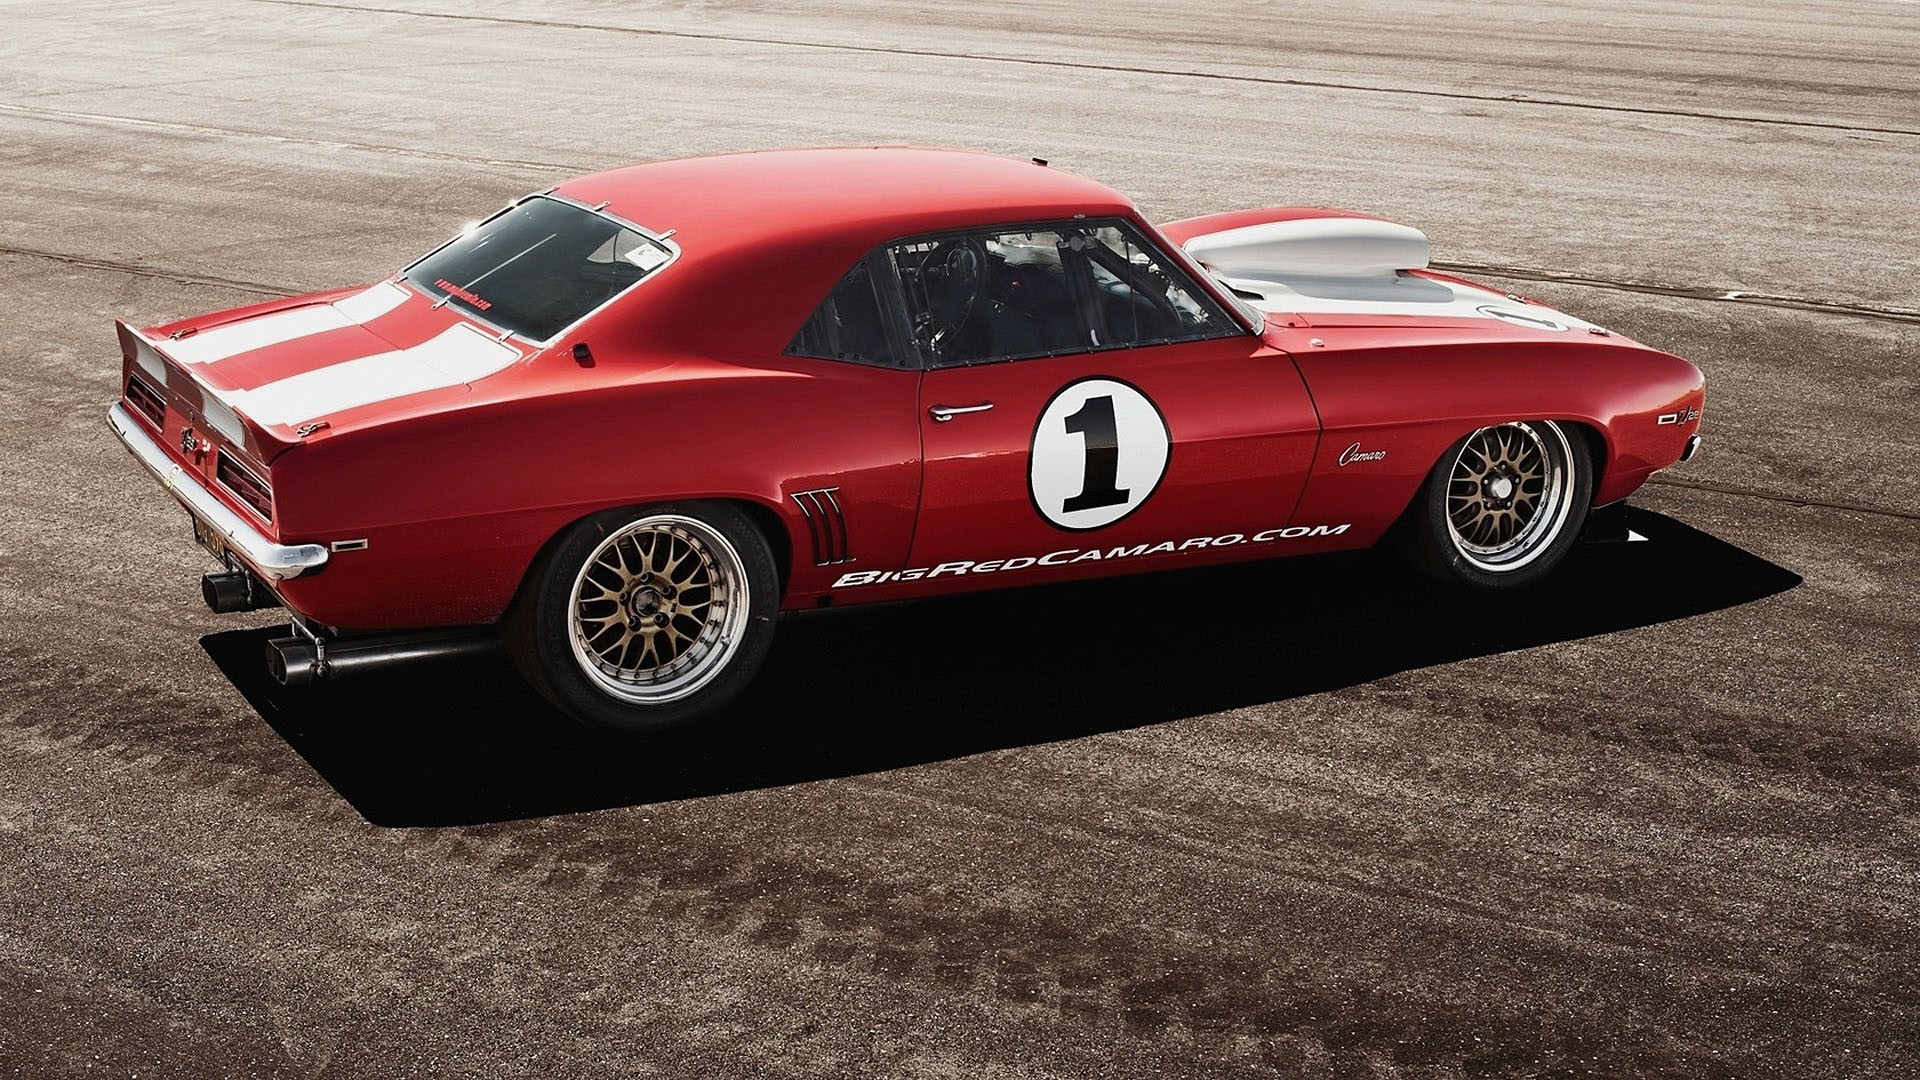 Chevy Muscle Car Wallpaper: Chevrolet Camaro Full HD Wallpaper And Background Image